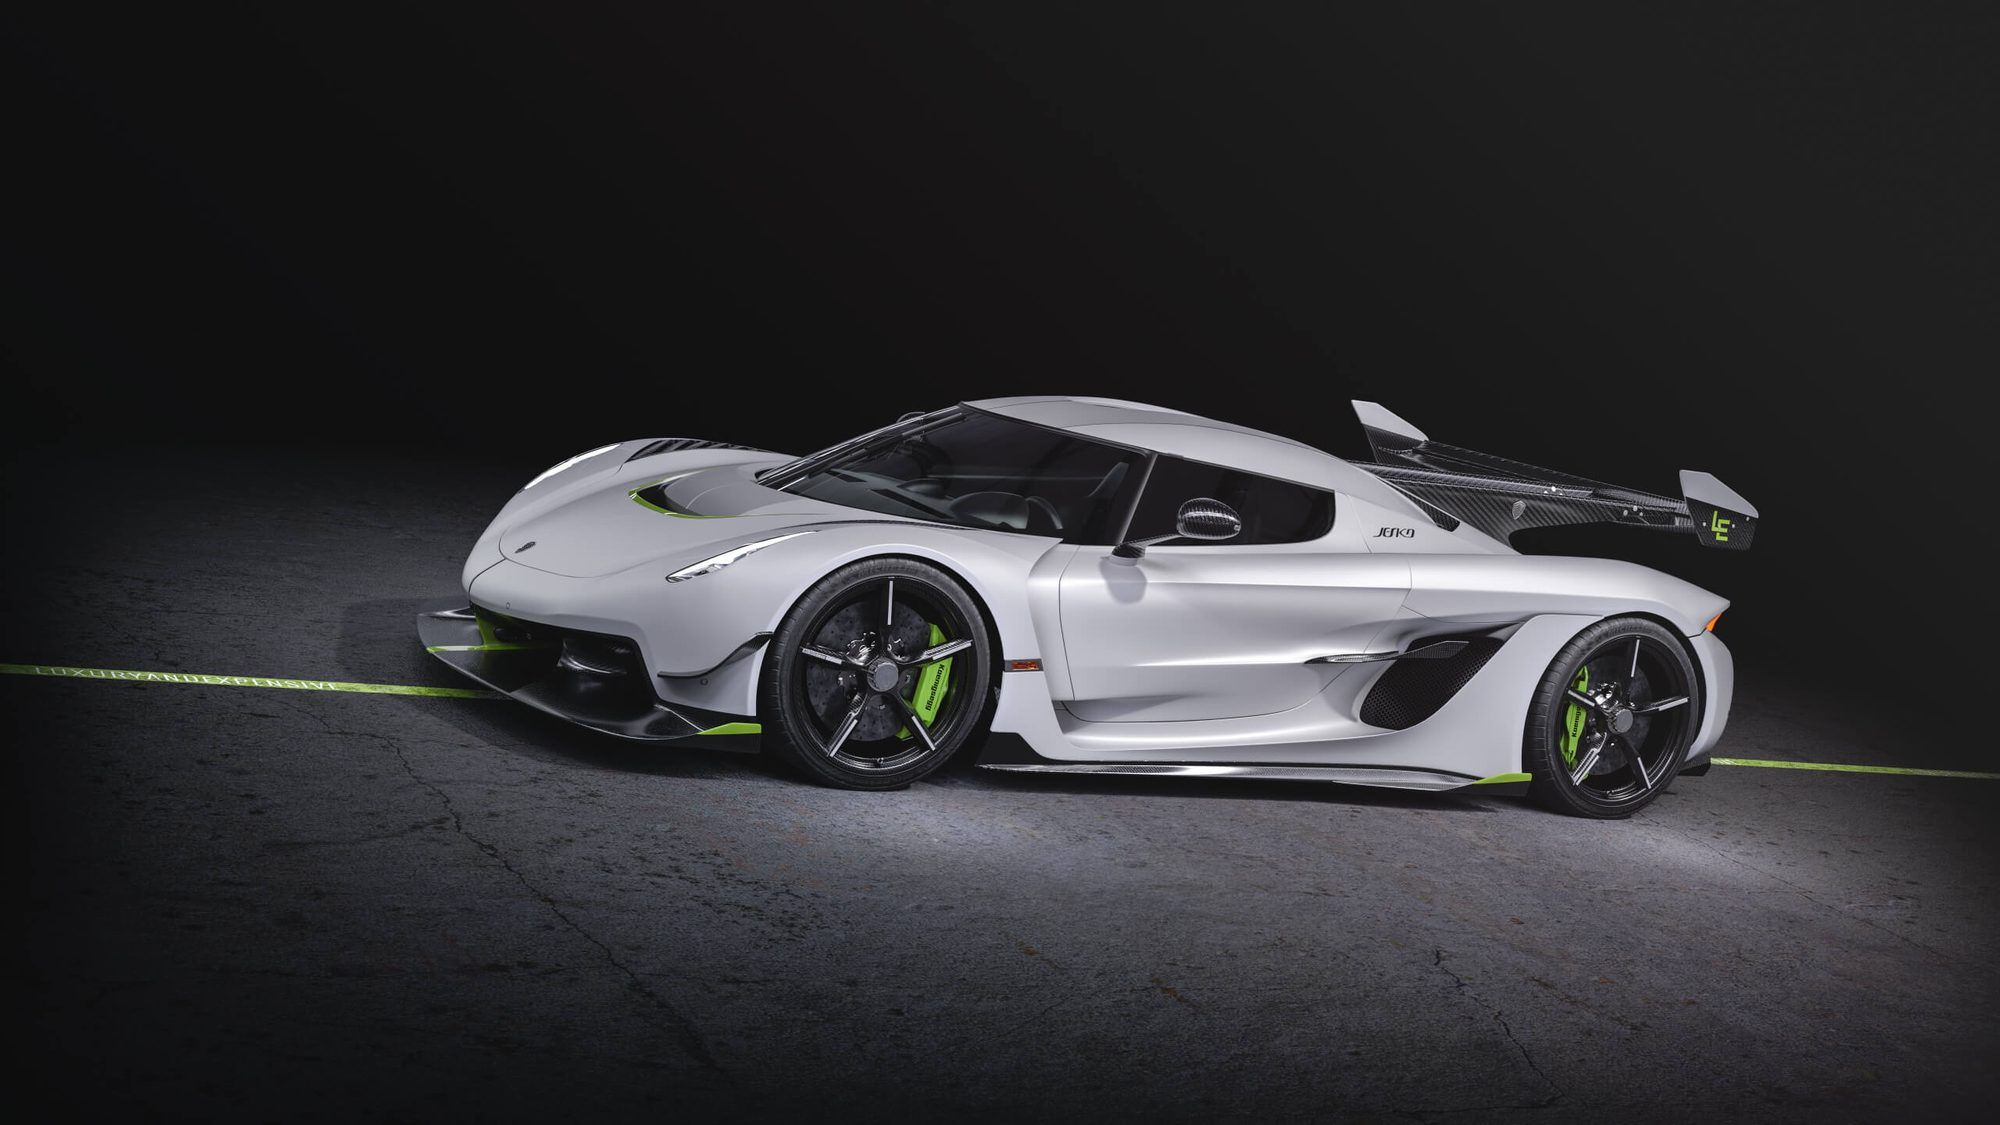 2021 Koenigsegg Jesko In Baesweiler Germany For Sale 10984955 In 2020 Koenigsegg Amg Car Used Luxury Cars